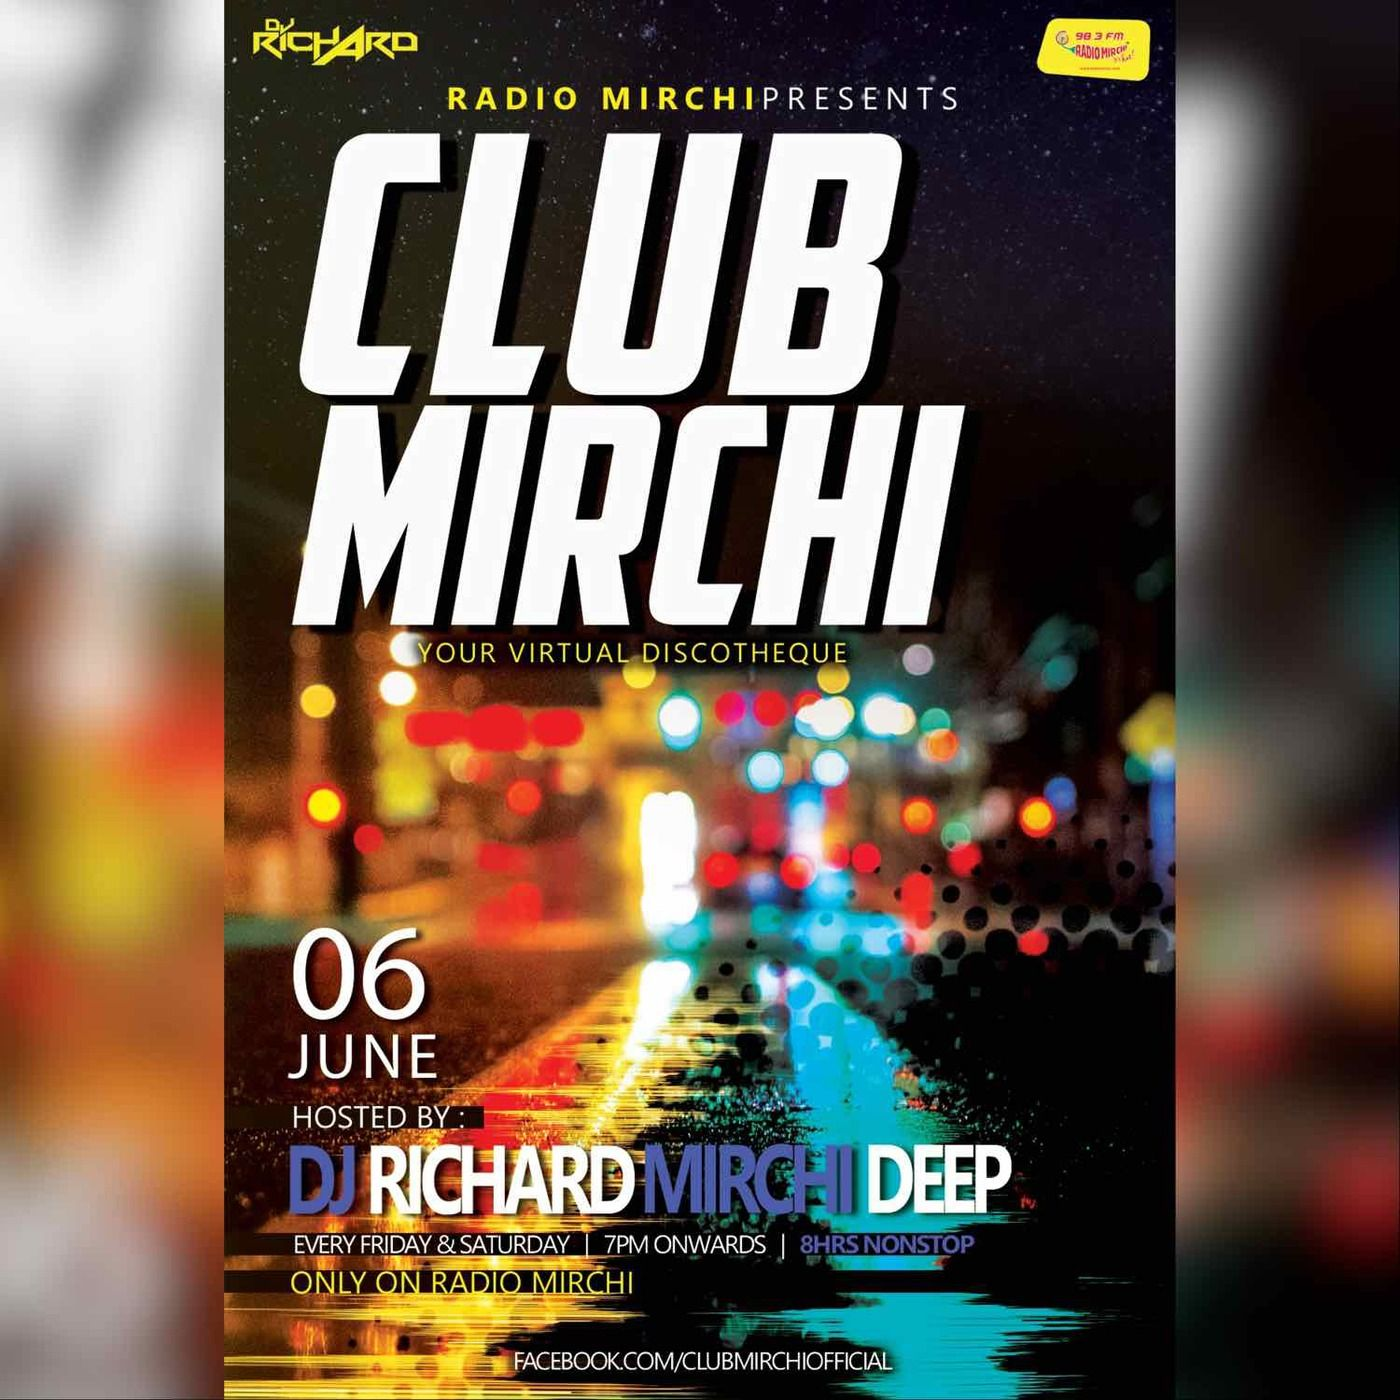 ClubMirchi EP 06-06-20 with DJ Richard & Mirchi Deep